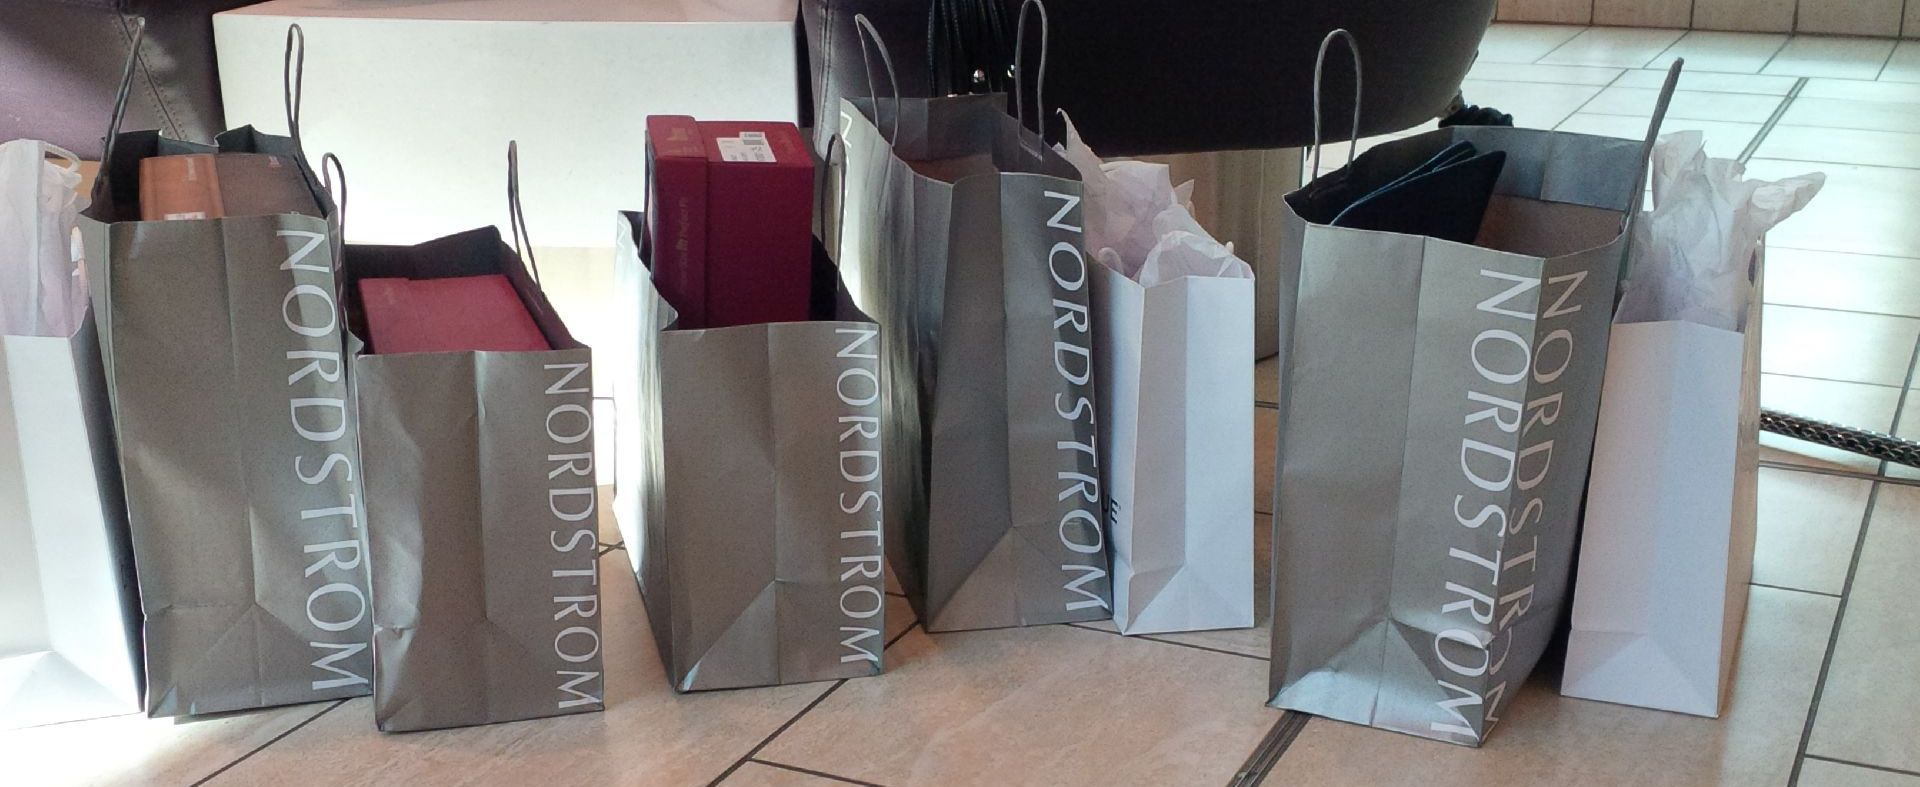 Lacey Johnsons Bags From Nordstrom Chapter 18